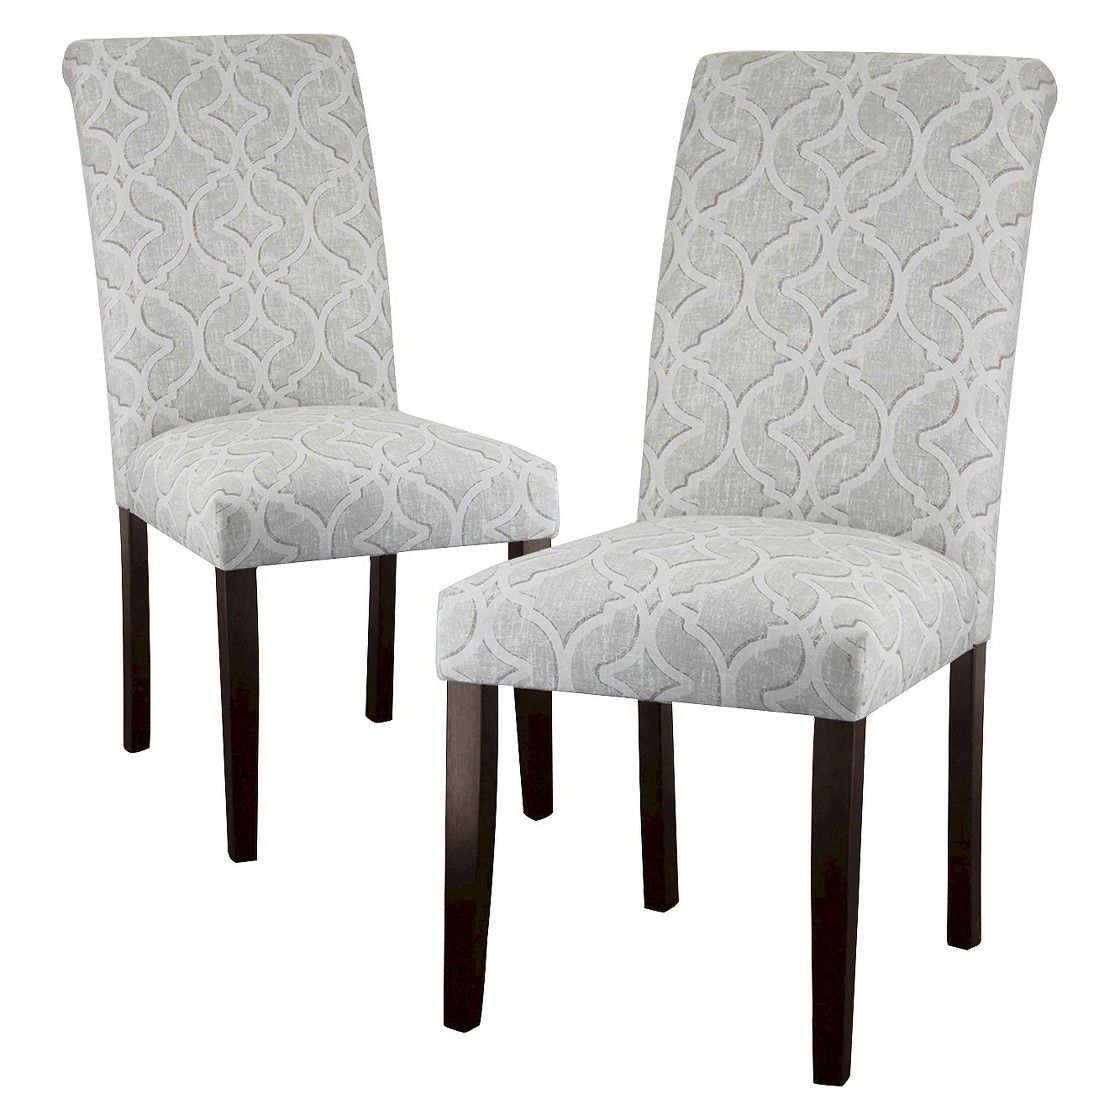 Avington Nuri Dining Chair Pearl (Set of 2) Dining chairs